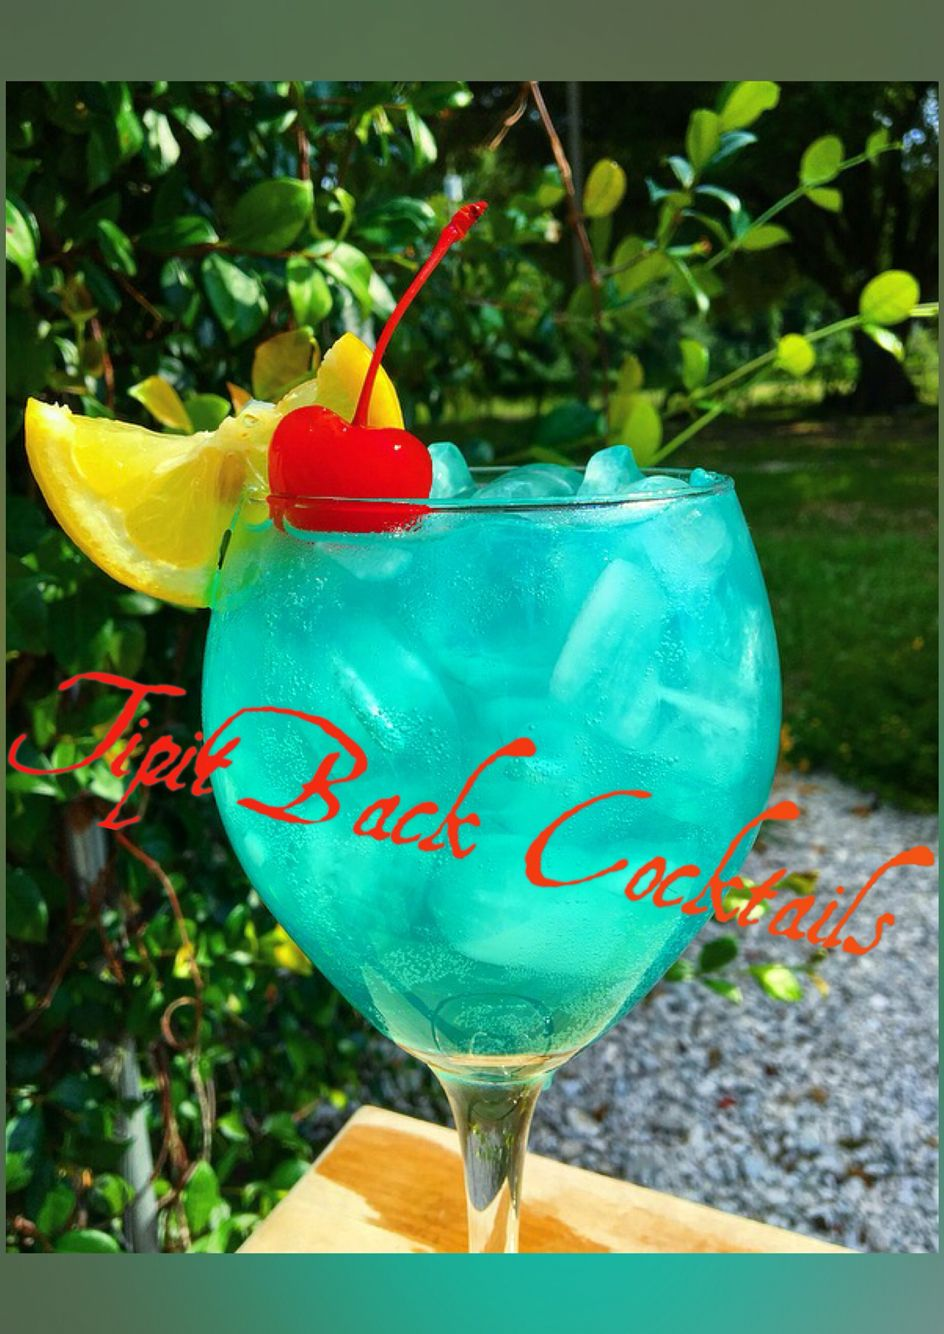 Kenny S Cooler 2 Oz Blue Chair Bay Coconut Rum 1 Oz Blue Curacao 1 Oz Peach Schnapps 2 Oz Sweet Alcoholic Drinks Rum And Lemonade Rum Drinks